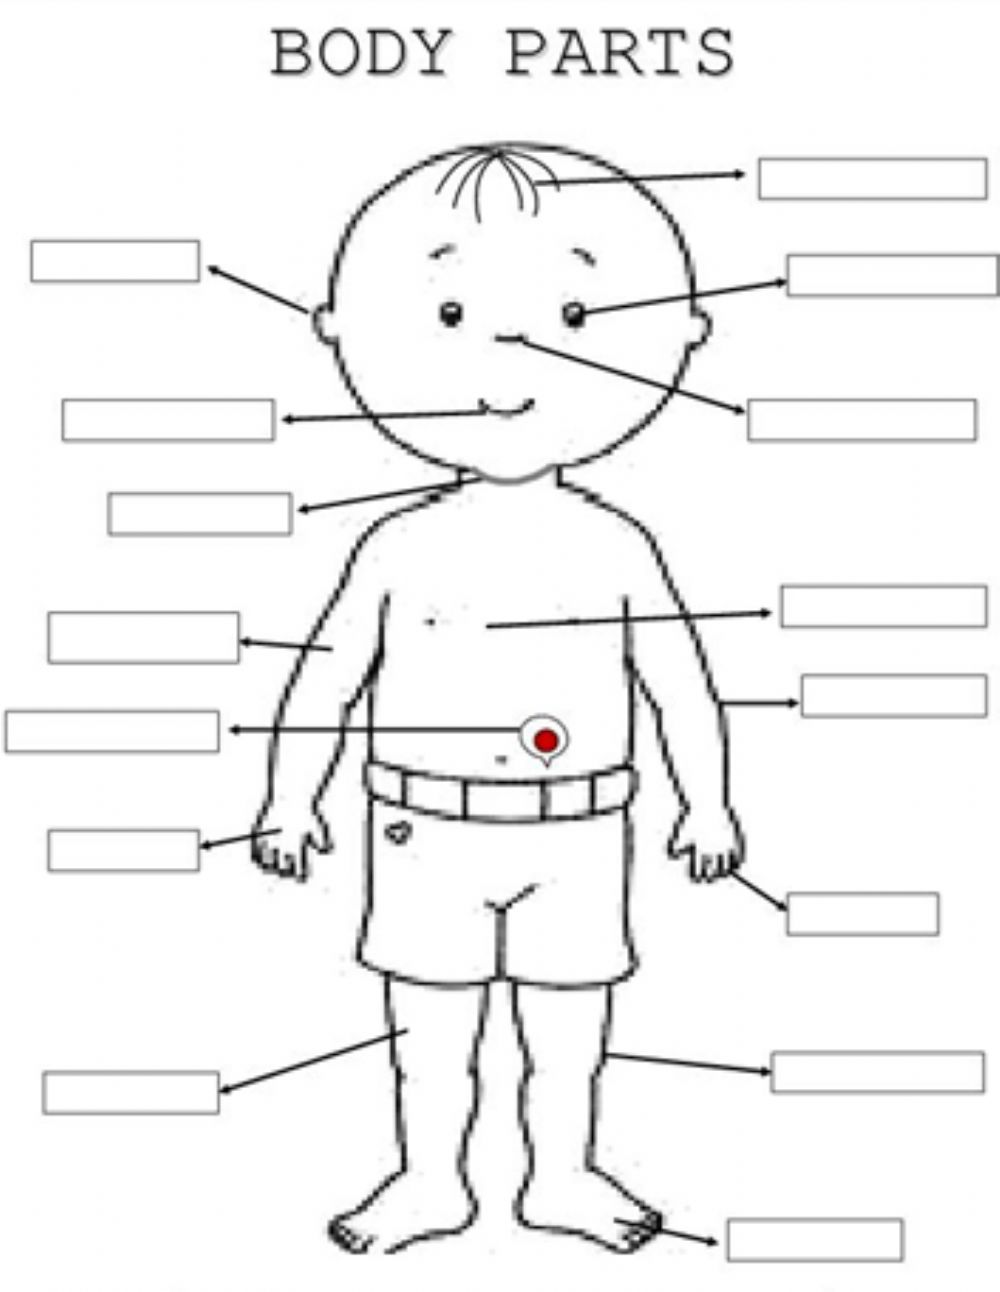 Body Parts: Parts of the body online worksheet